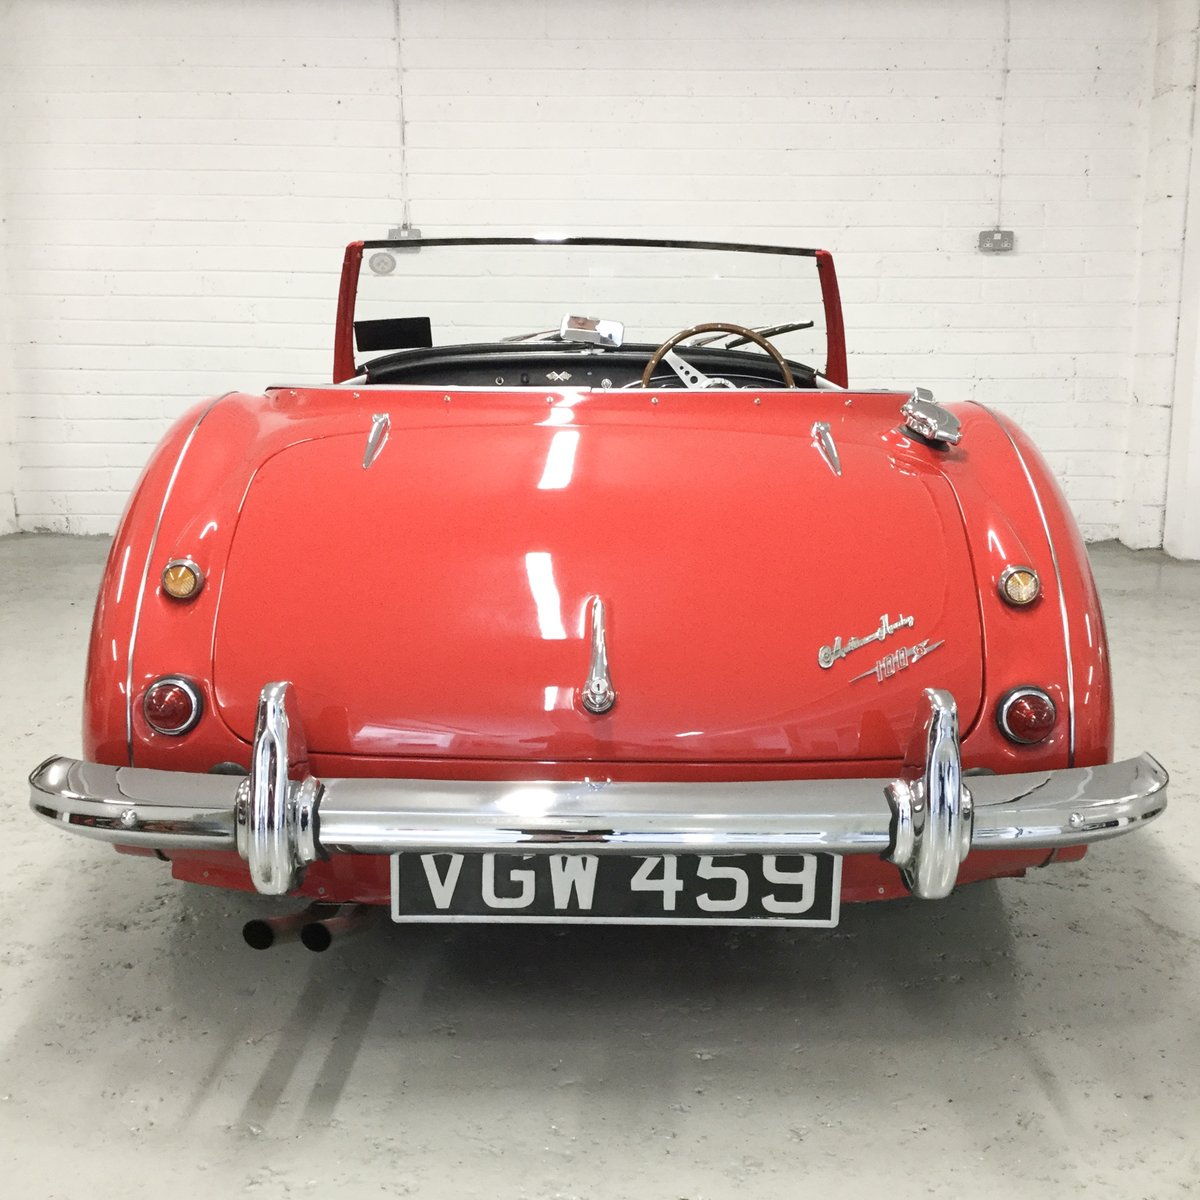 1958 Austin Healey 100-6 BN4 For Sale (picture 4 of 6)